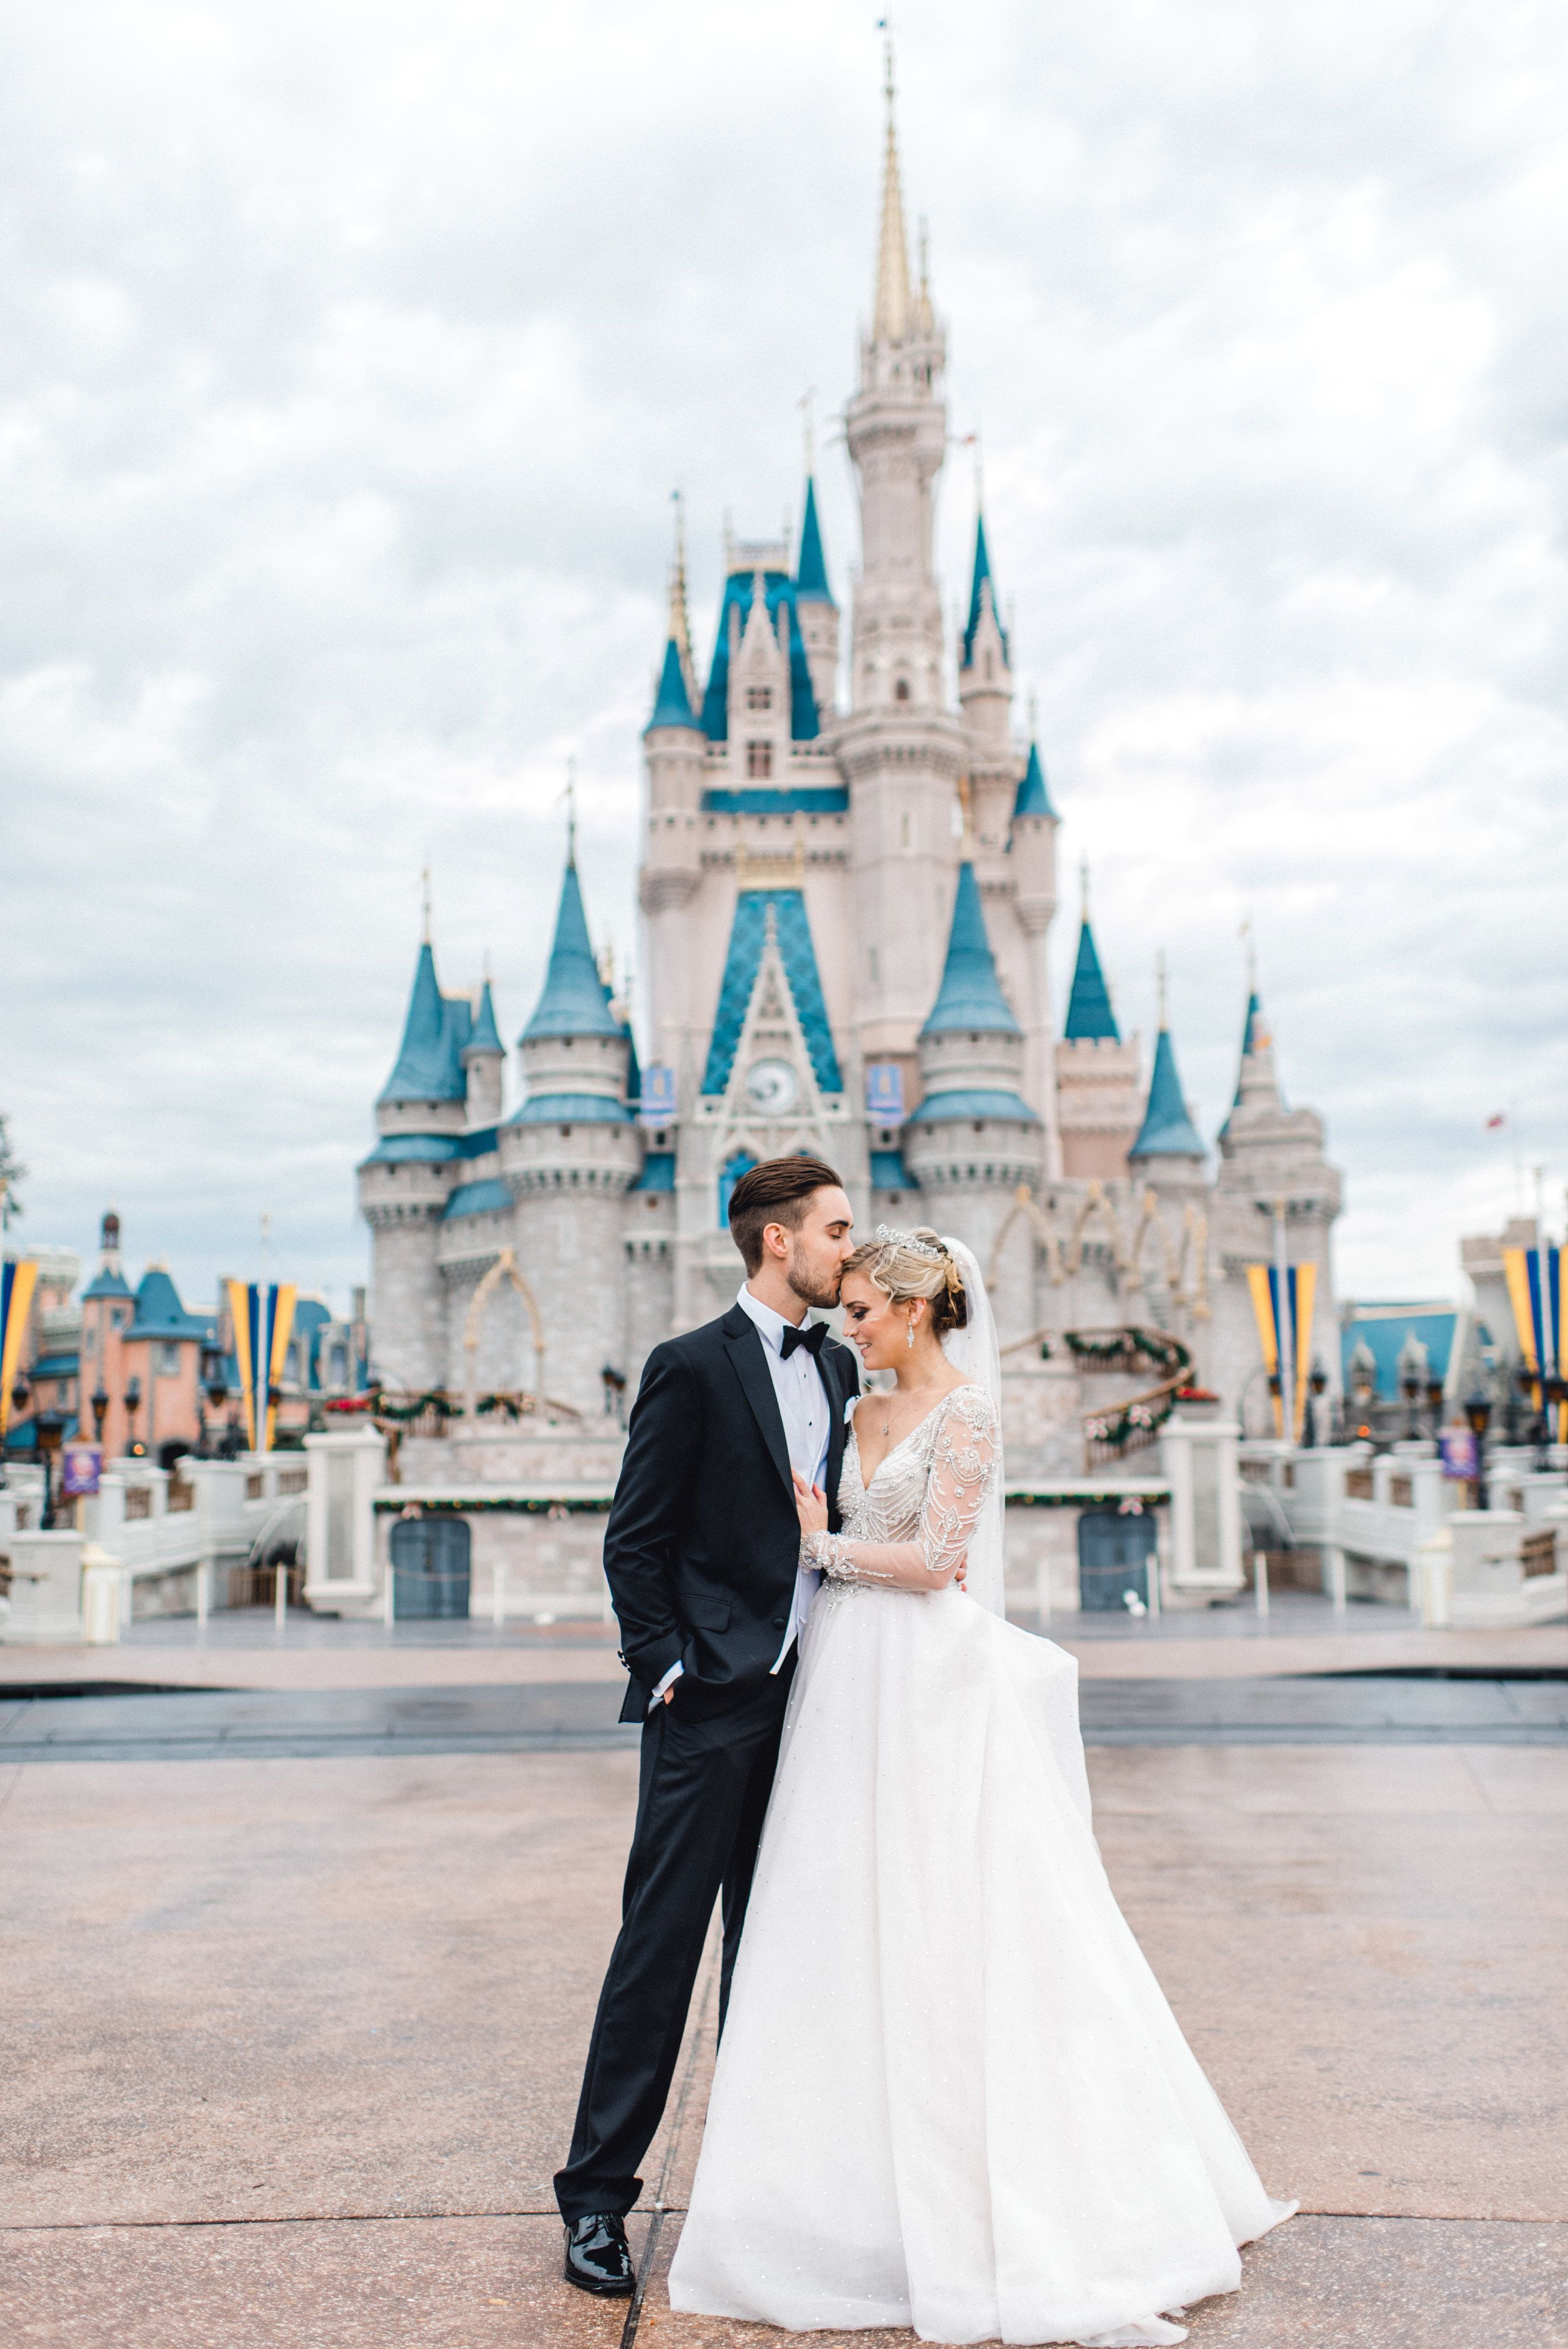 Disney S Fairy Tale Weddings Disney World Wedding Disney Bride Disney Wedding